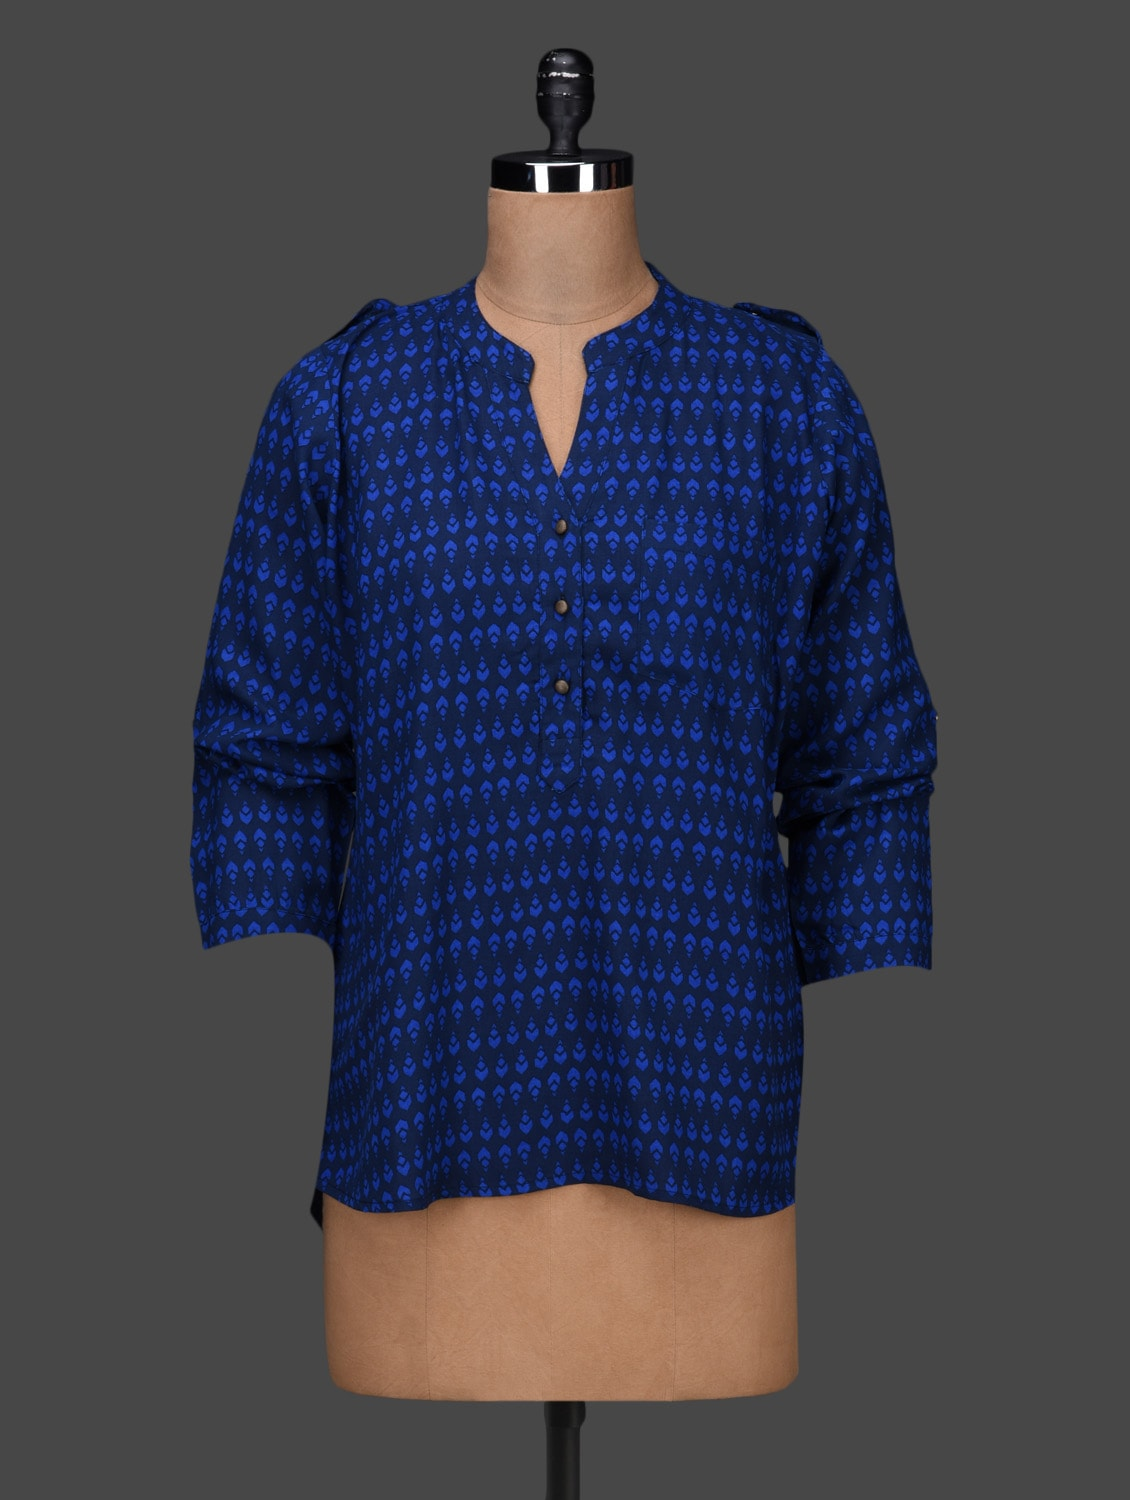 Royal Blue Printed Full Sleeve Top - LQQKE